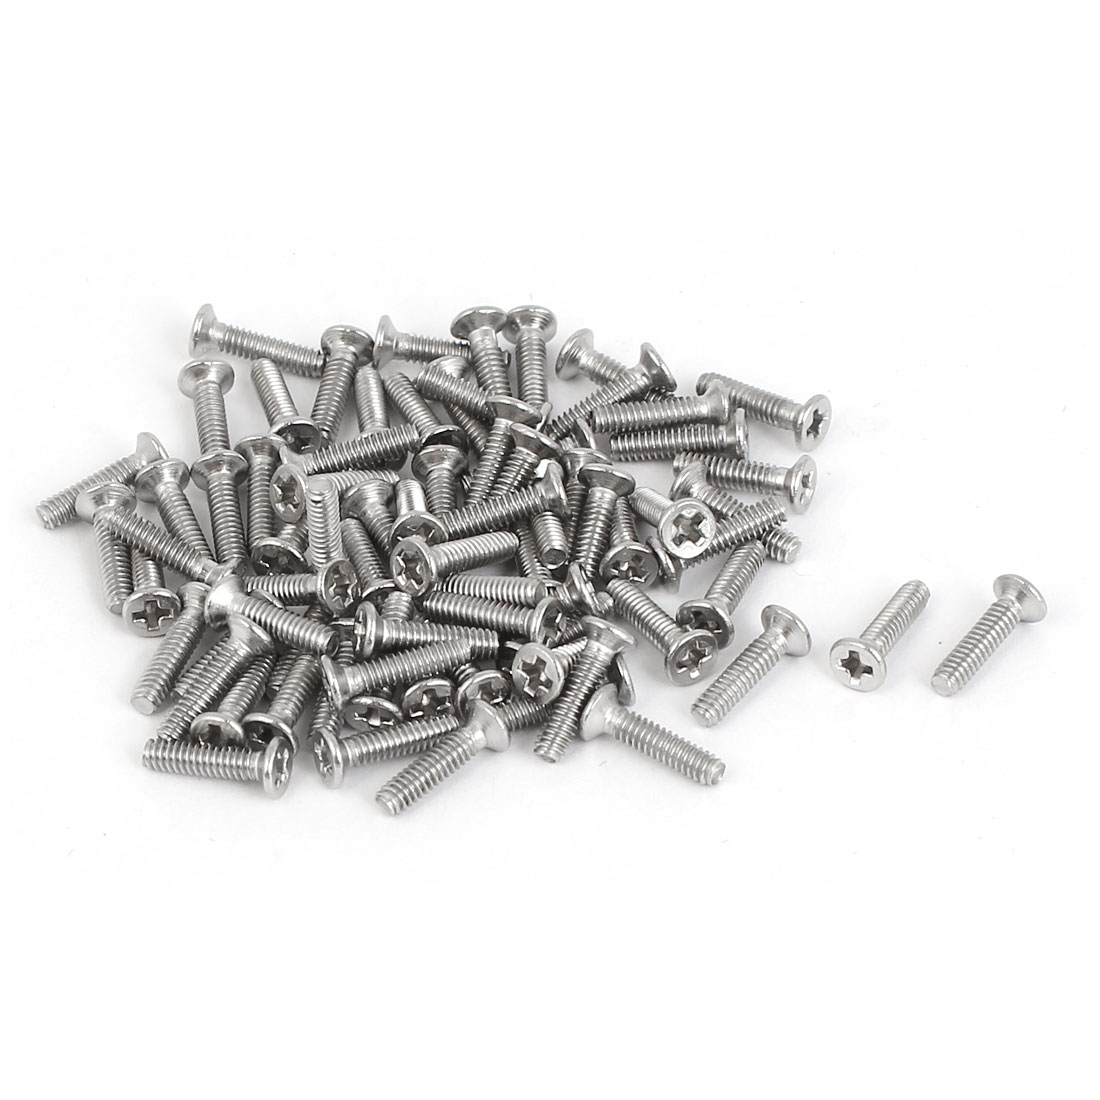 M2 x 8mm Fully Thread 316 Stainless Steel Phillips Drive Flat Head Screws 75 Pcs